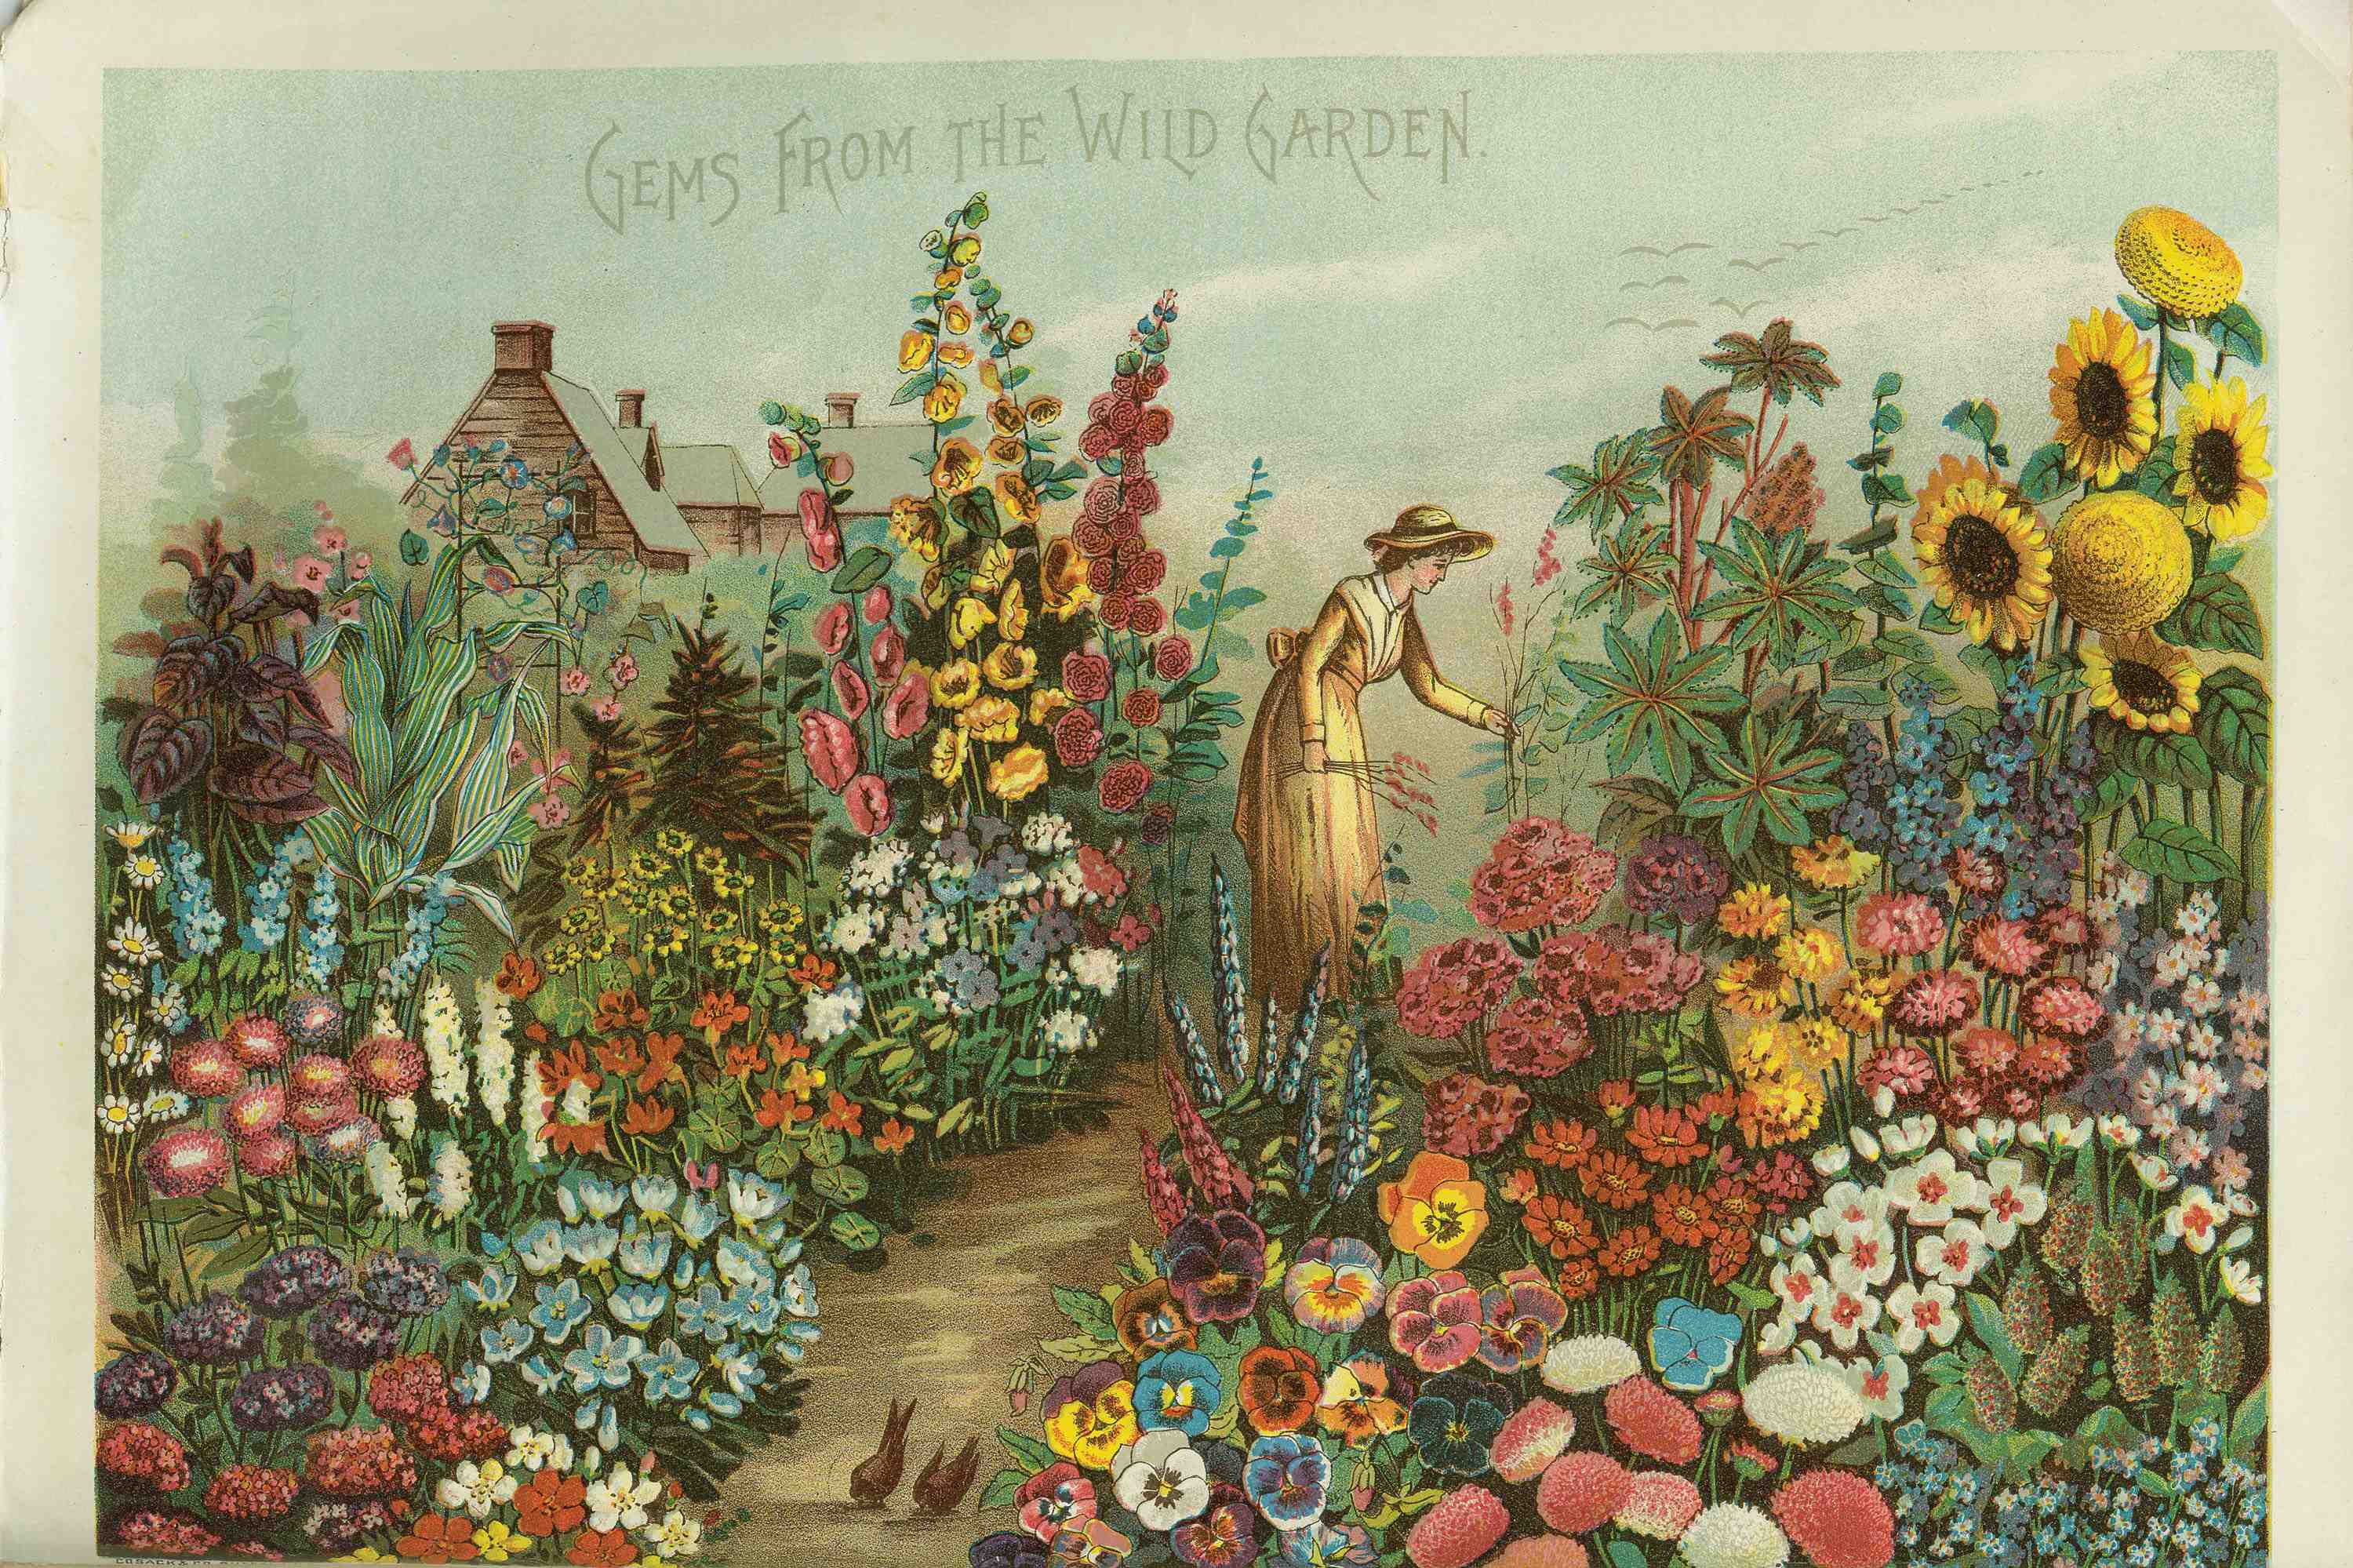 English country garden paintings - English Country Garden Paintings English Garden 1a Jpg